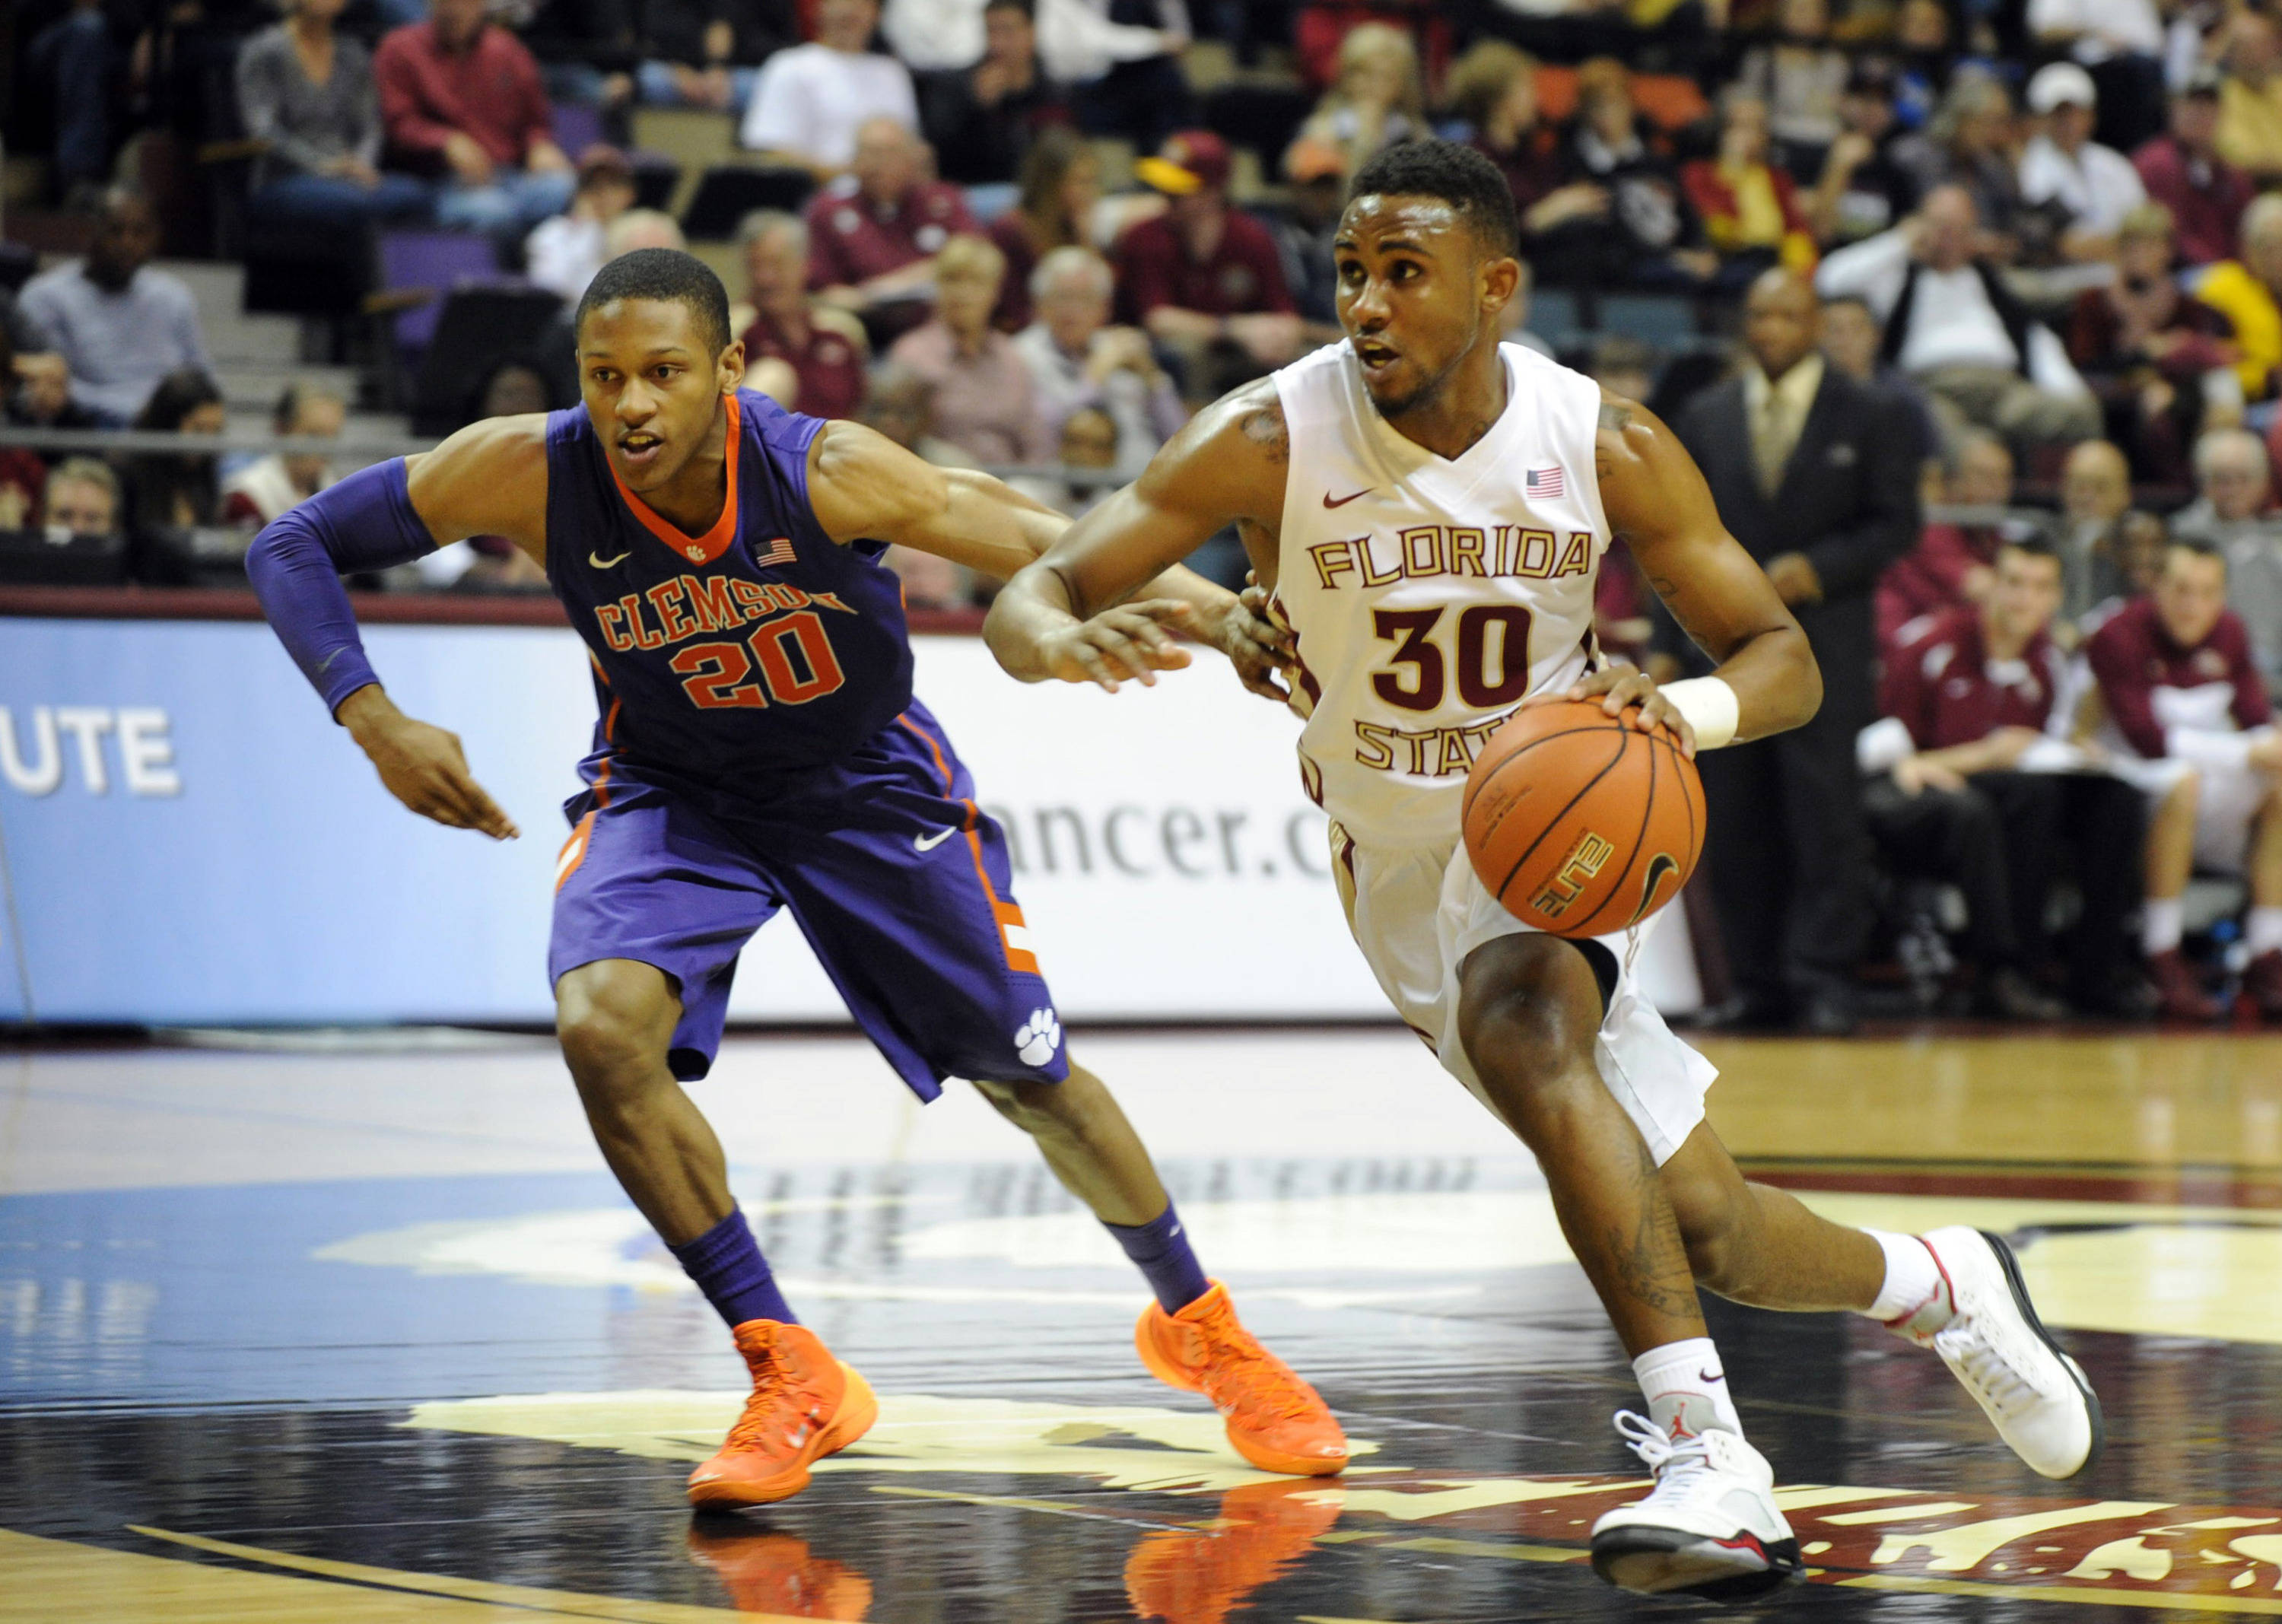 Feb 1, 2014; Tallahassee, FL, USA; Florida State Seminoles guard Ian Miller (30) moves the ball past Clemson Tigers guard Jordan Roper (20) during the first half at the Donald L. Tucker Center. Mandatory Credit: Melina Vastola-USA TODAY Sports